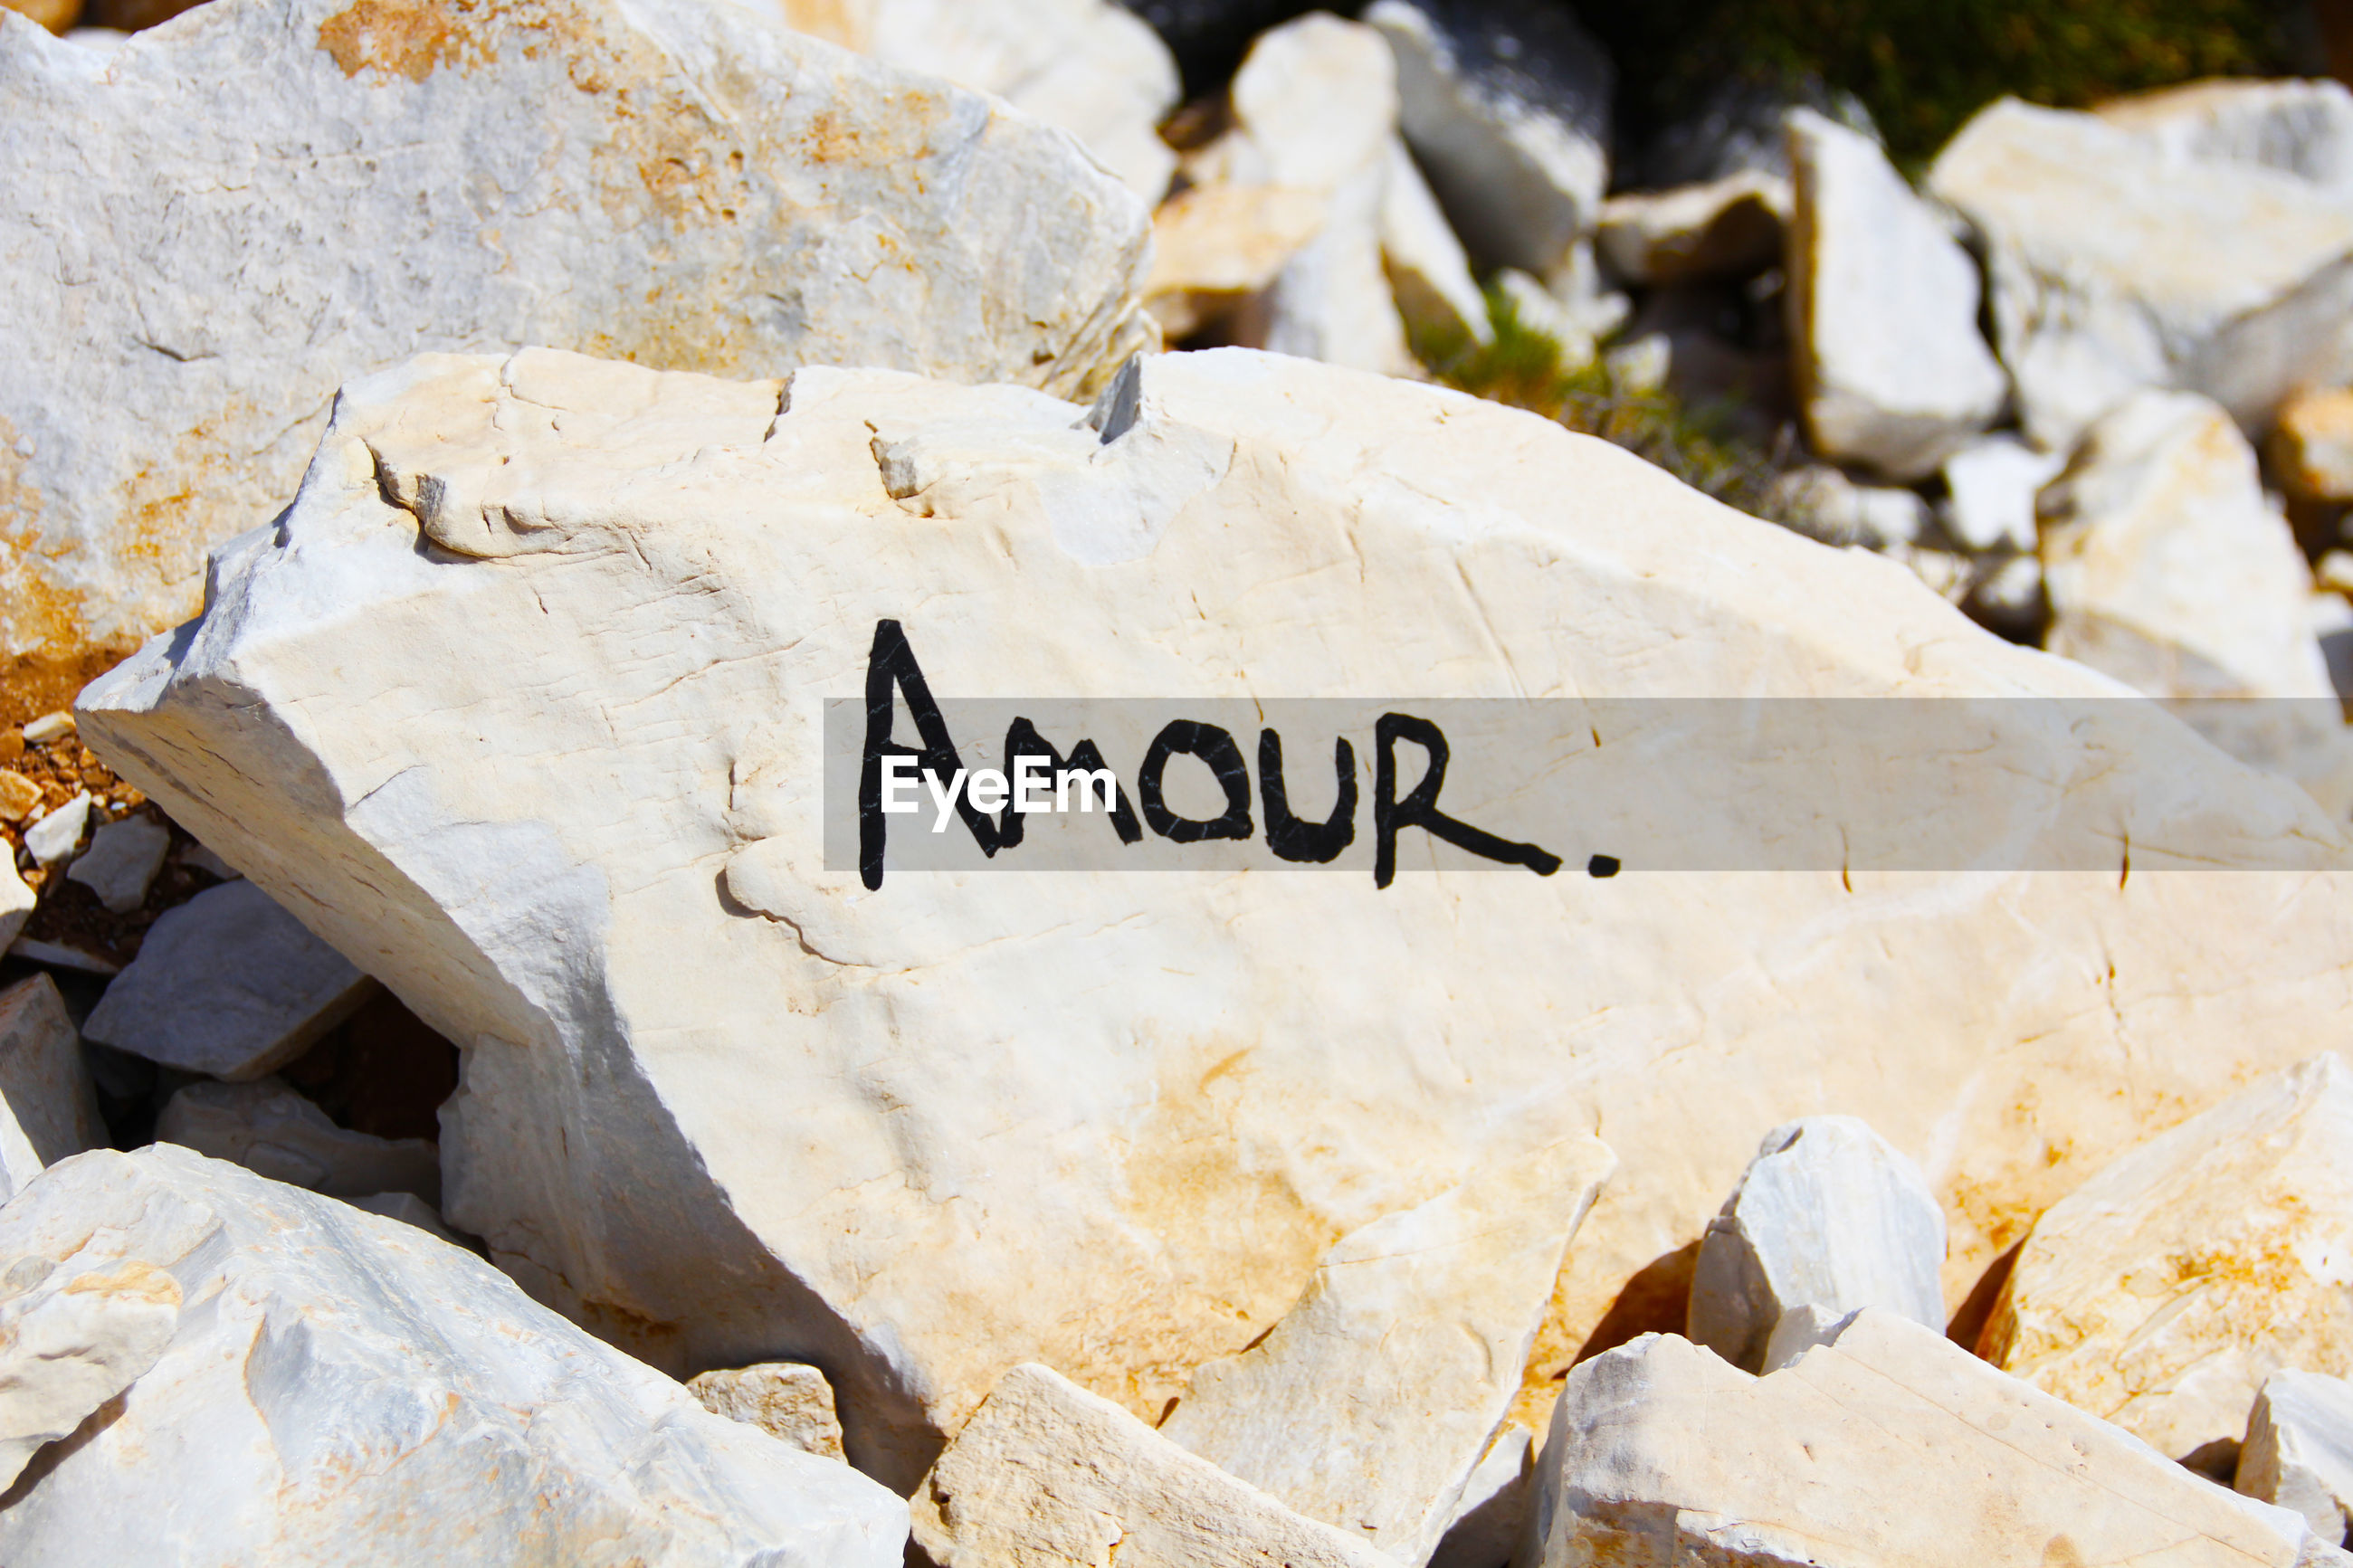 Text on rock